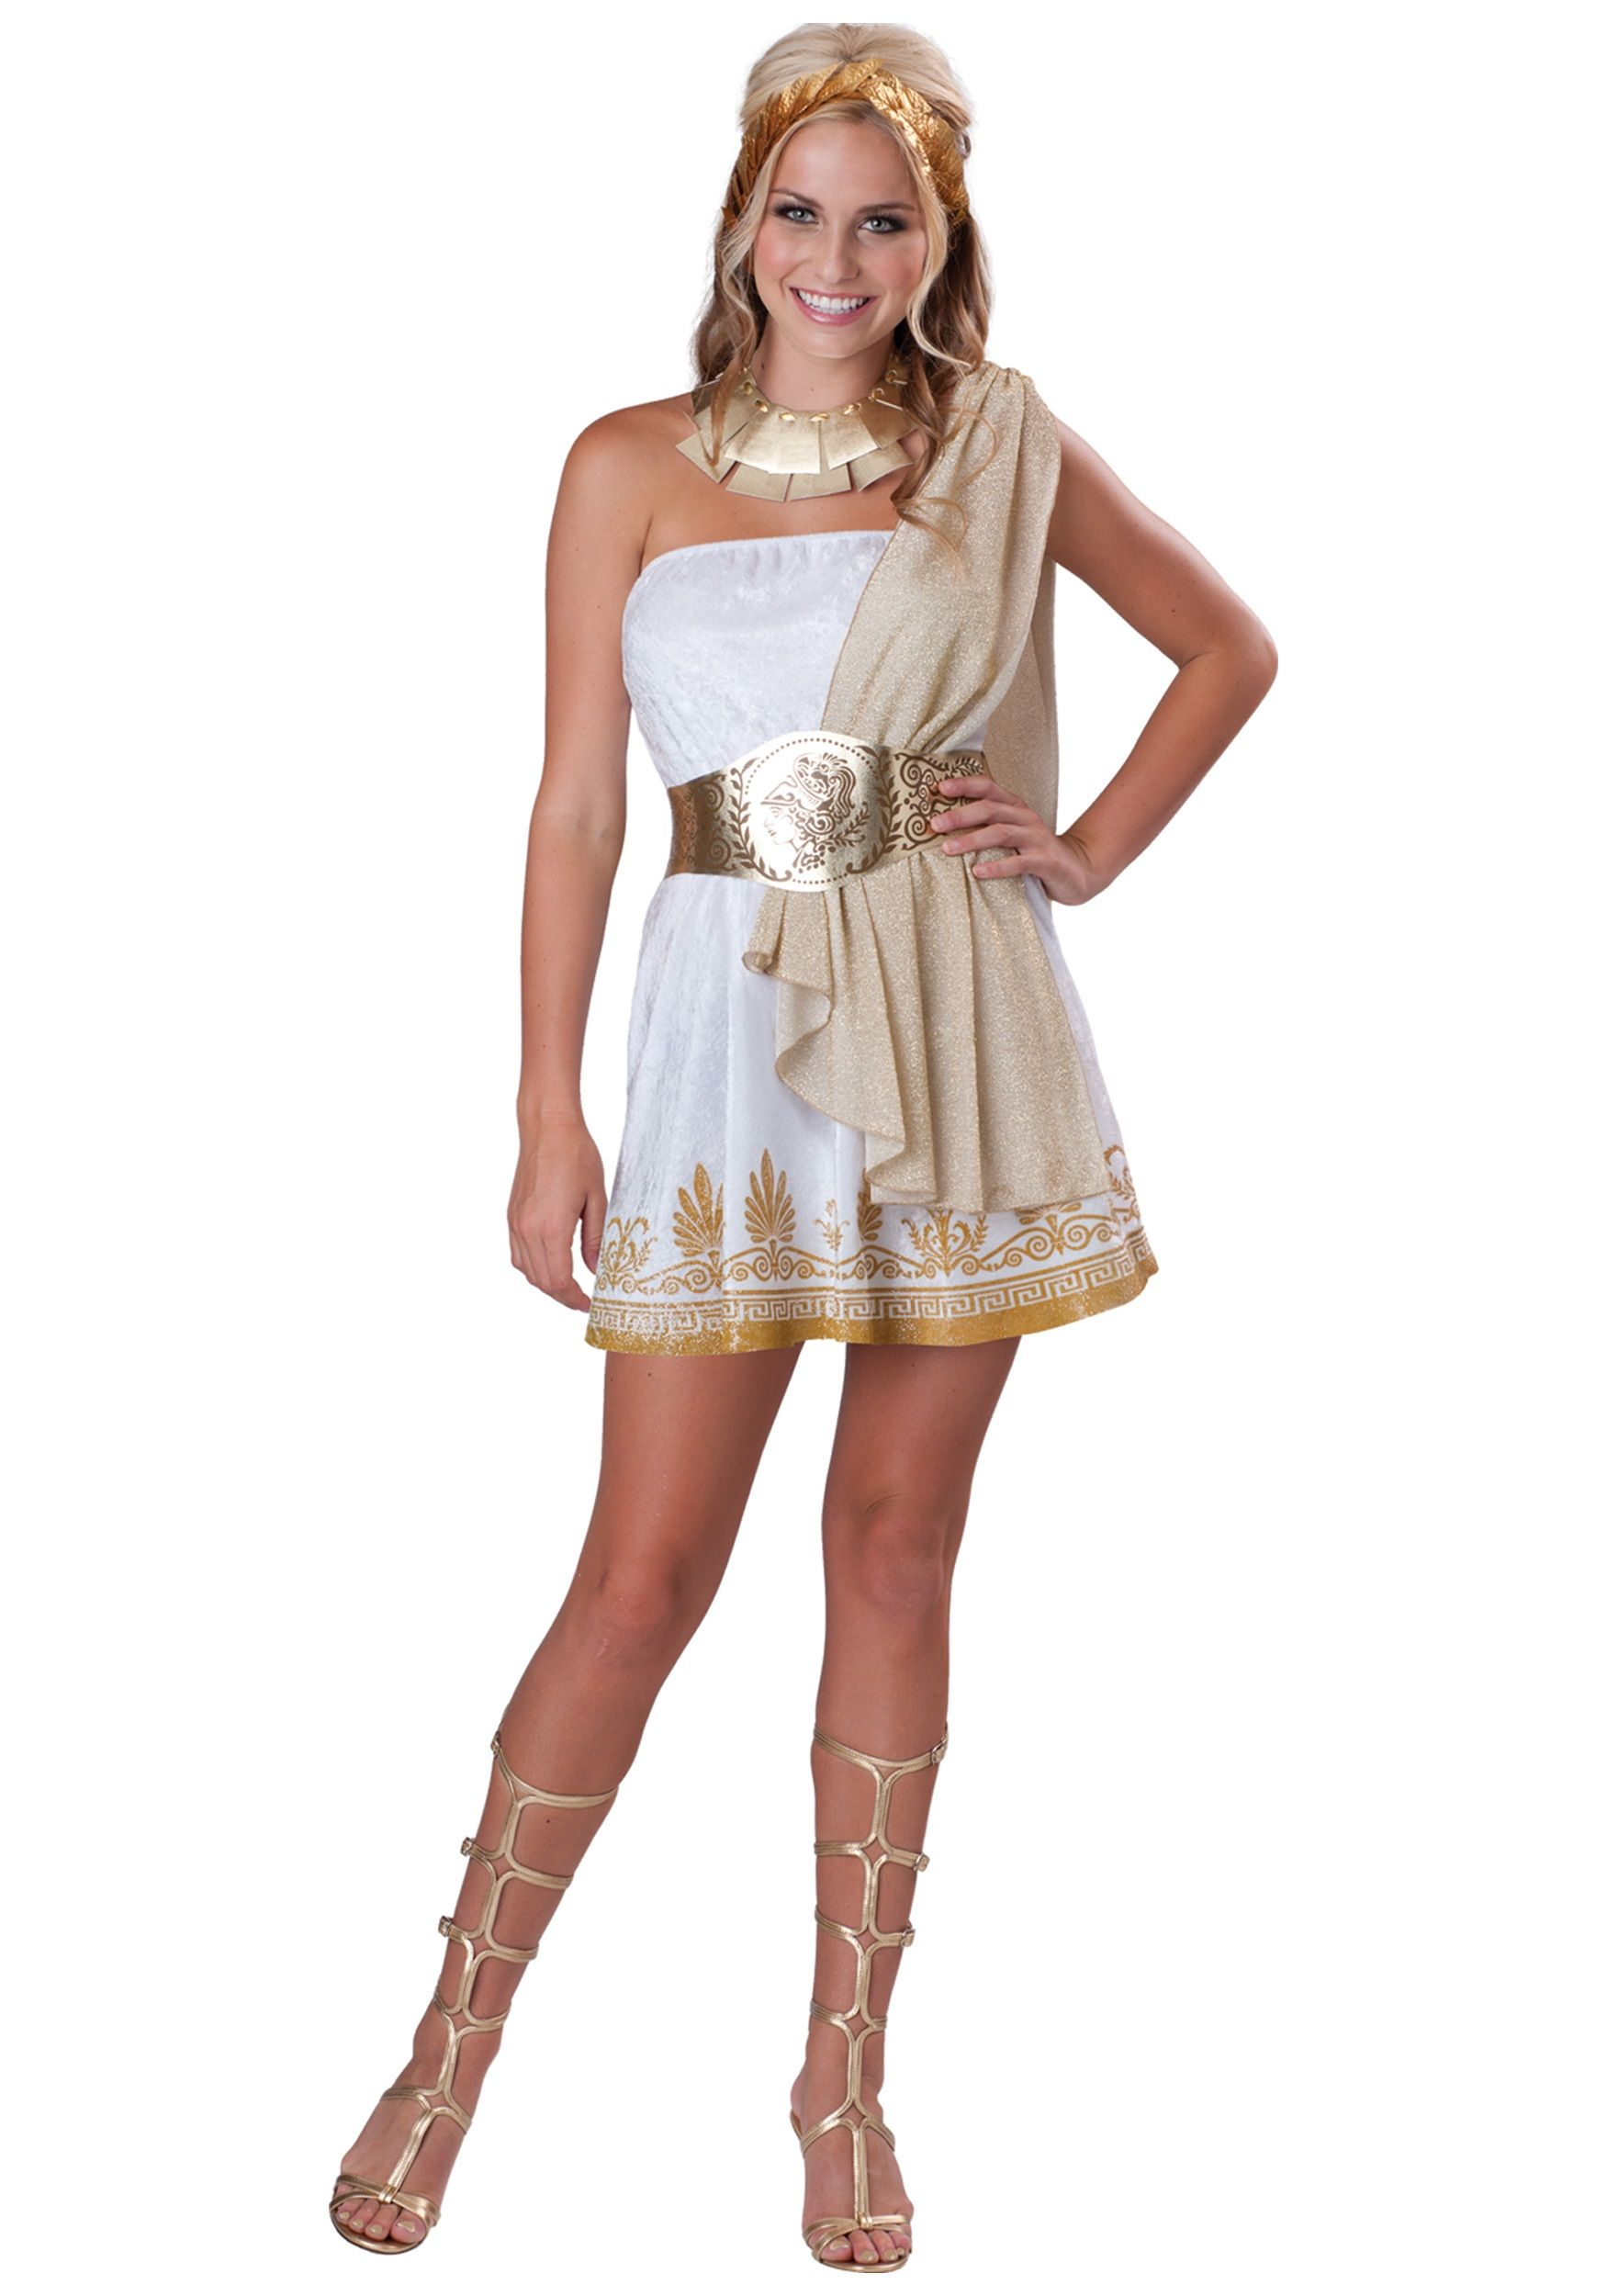 Teen Greek Goddess Costume | Goddesses, Goddess costume and ...